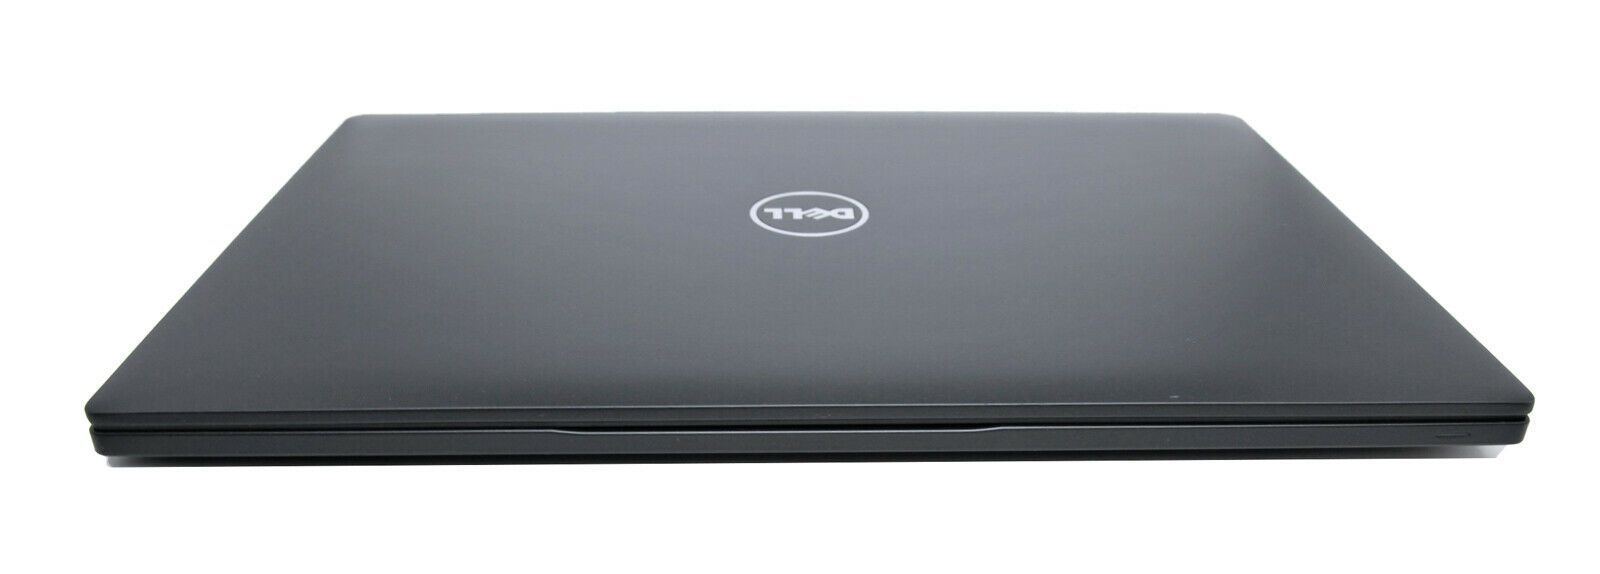 Dell Latitude E7480 IPS Ultrabook: Core i7-6600U, 16GB RAM, 256GB, VAT - CruiseTech